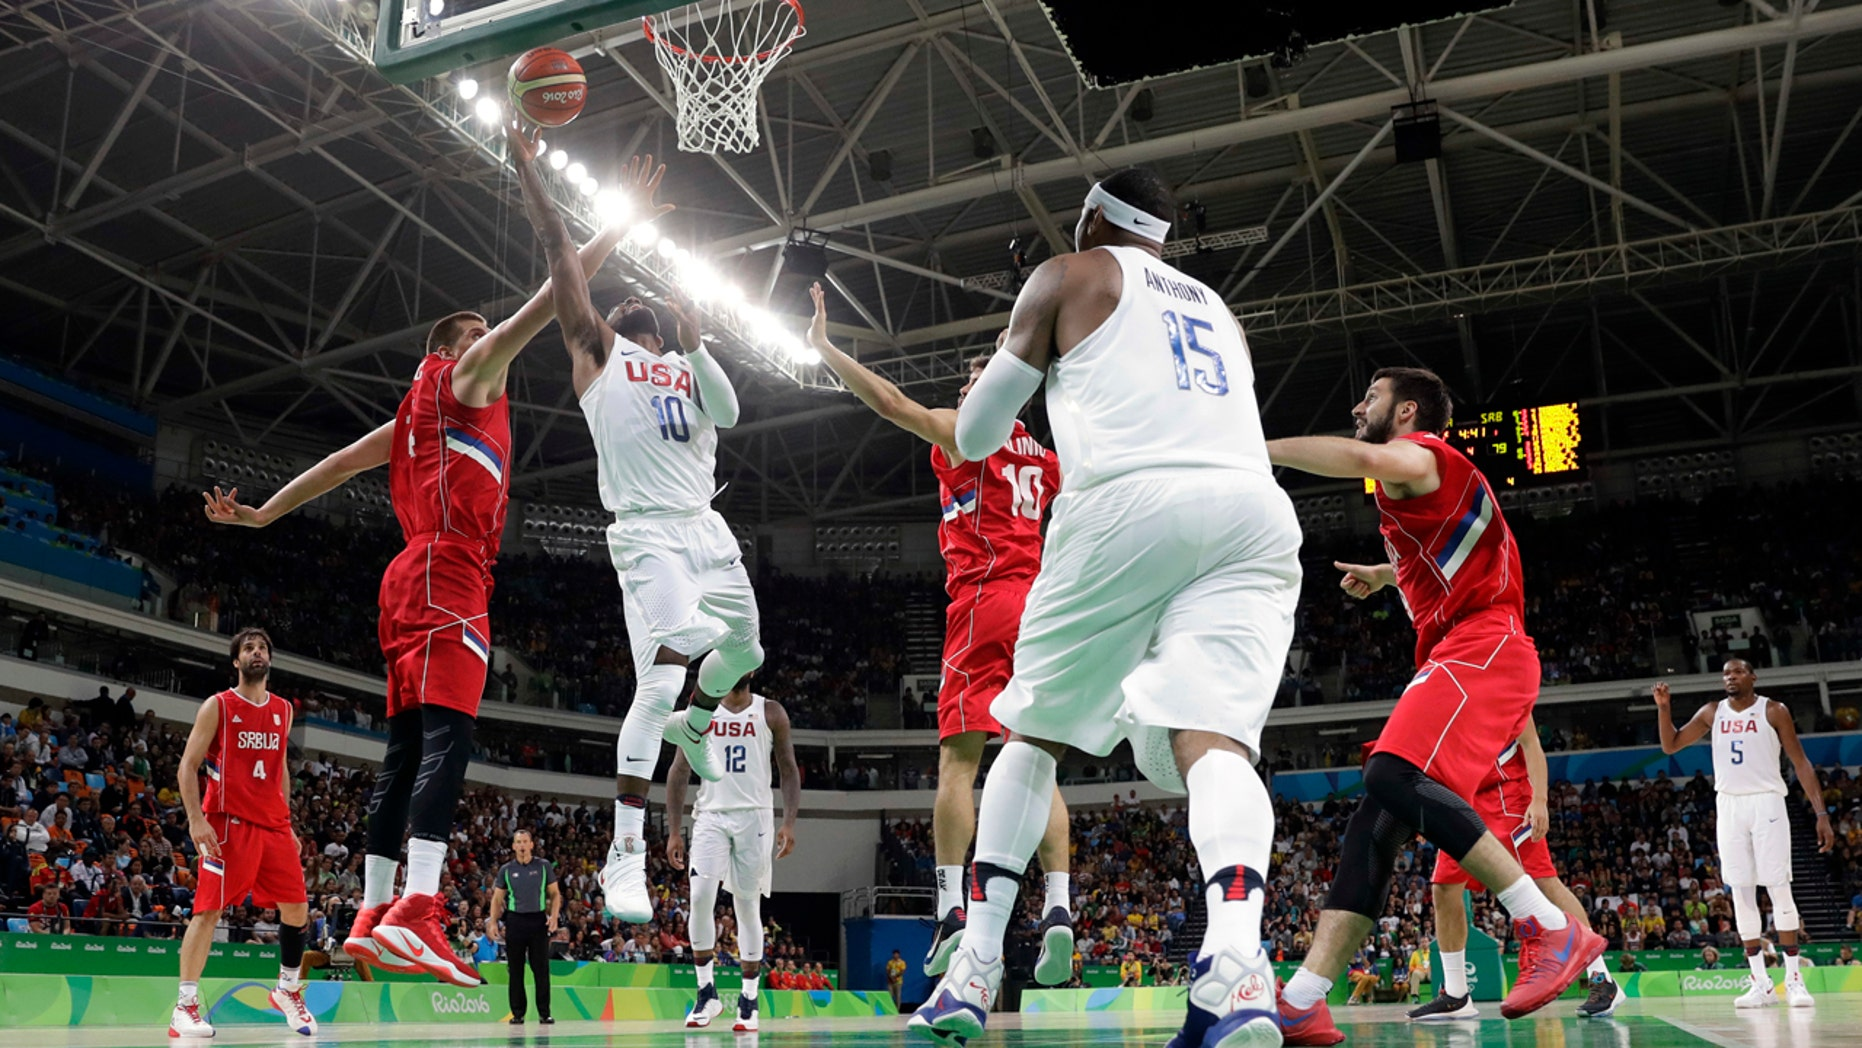 Aug. 12, 2016: United States' Kyrie Irving (10) scores over Serbia's Nikola Jokic, left, during a men's basketball game at the 2016 Summer Olympics in Rio de Janeiro, Brazil.